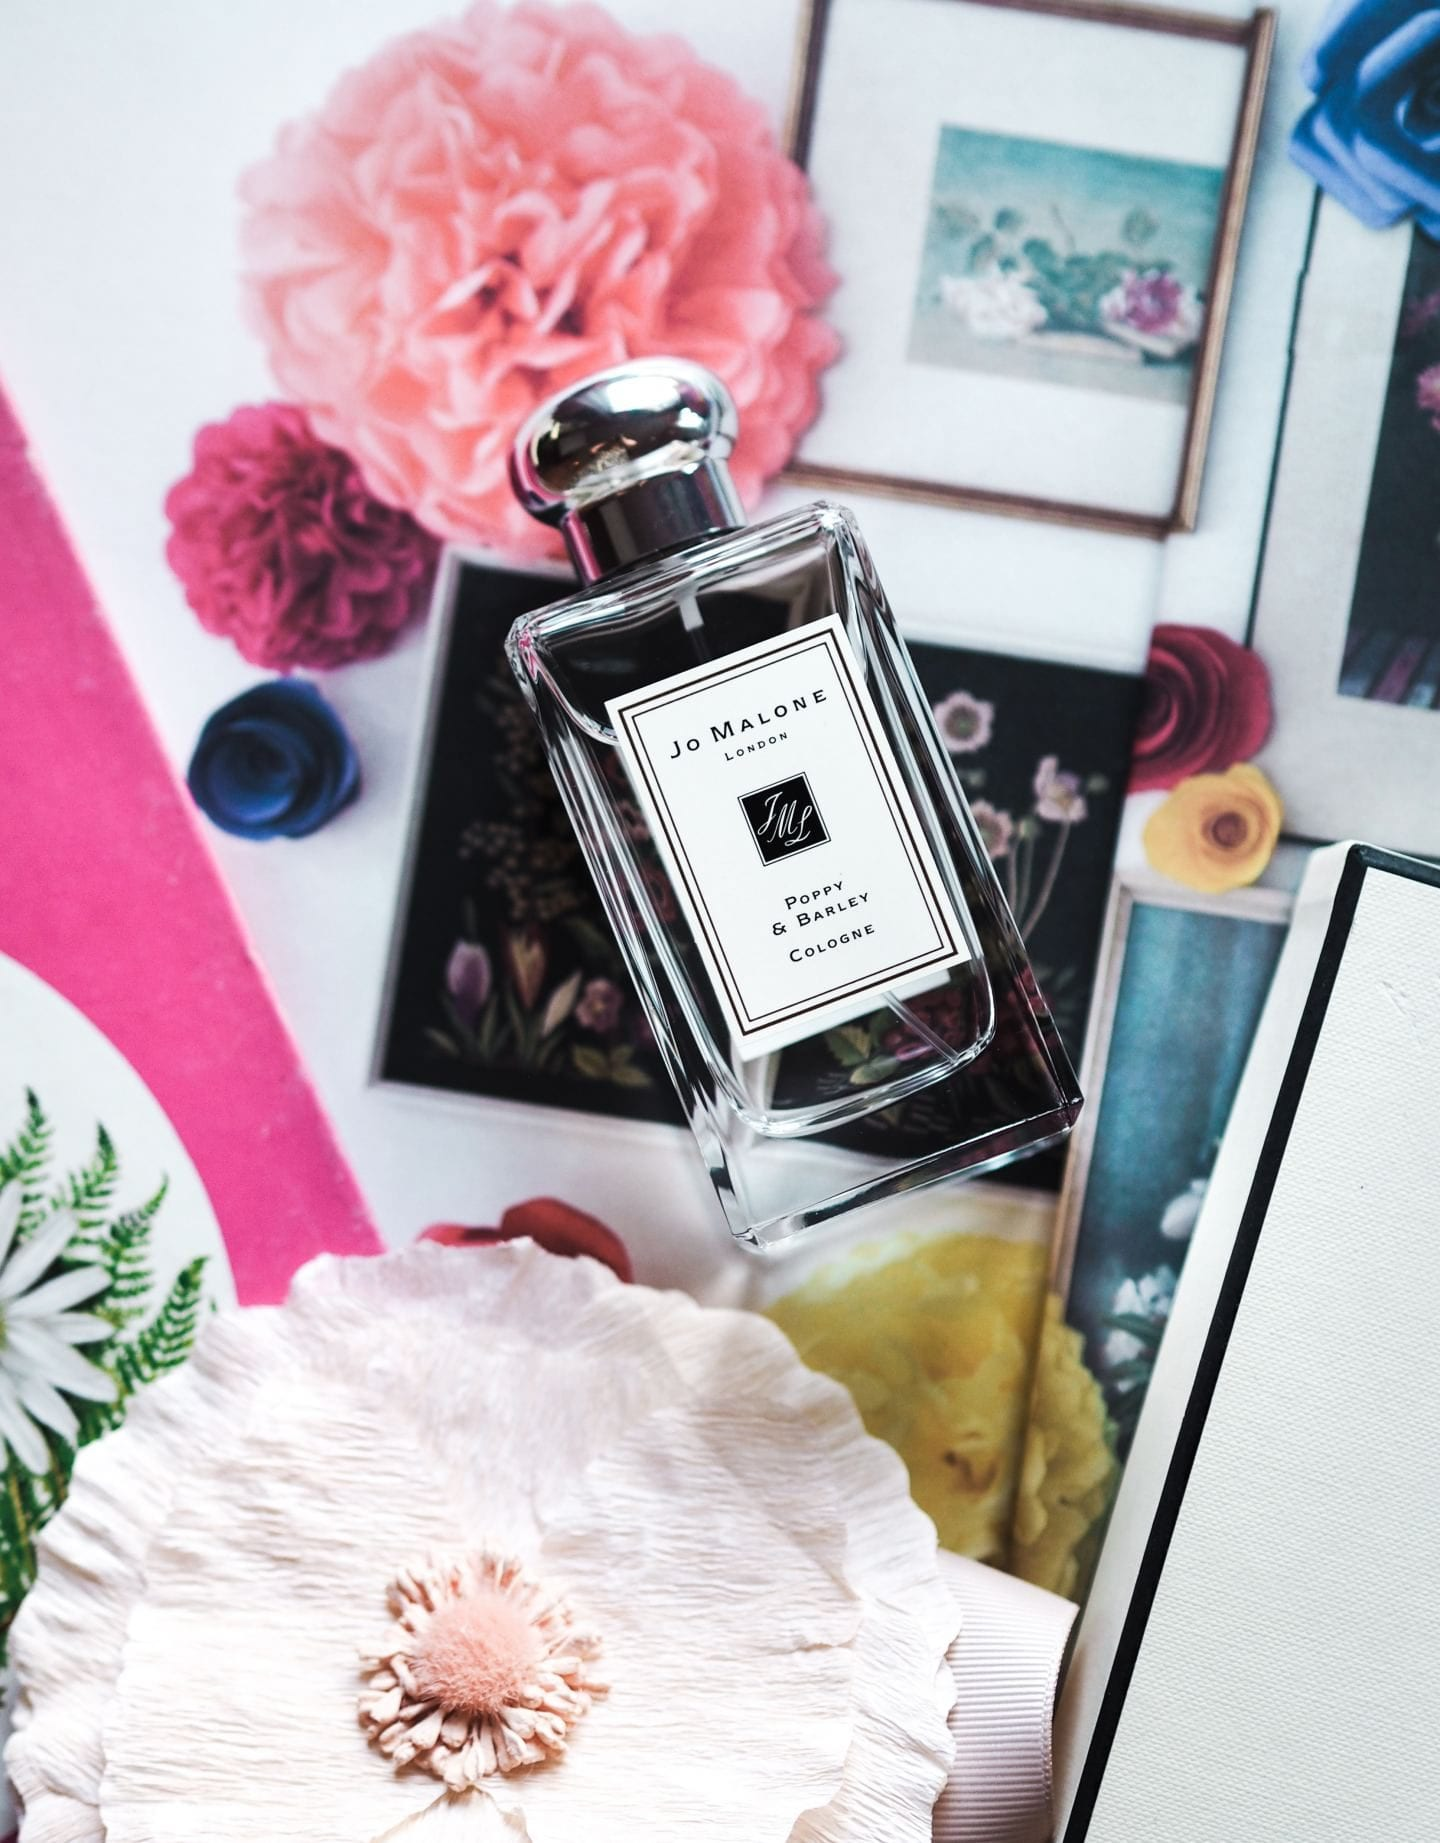 Jo Malone London 'Poppy & Barley' Is BACK! perfume fragrance 2019